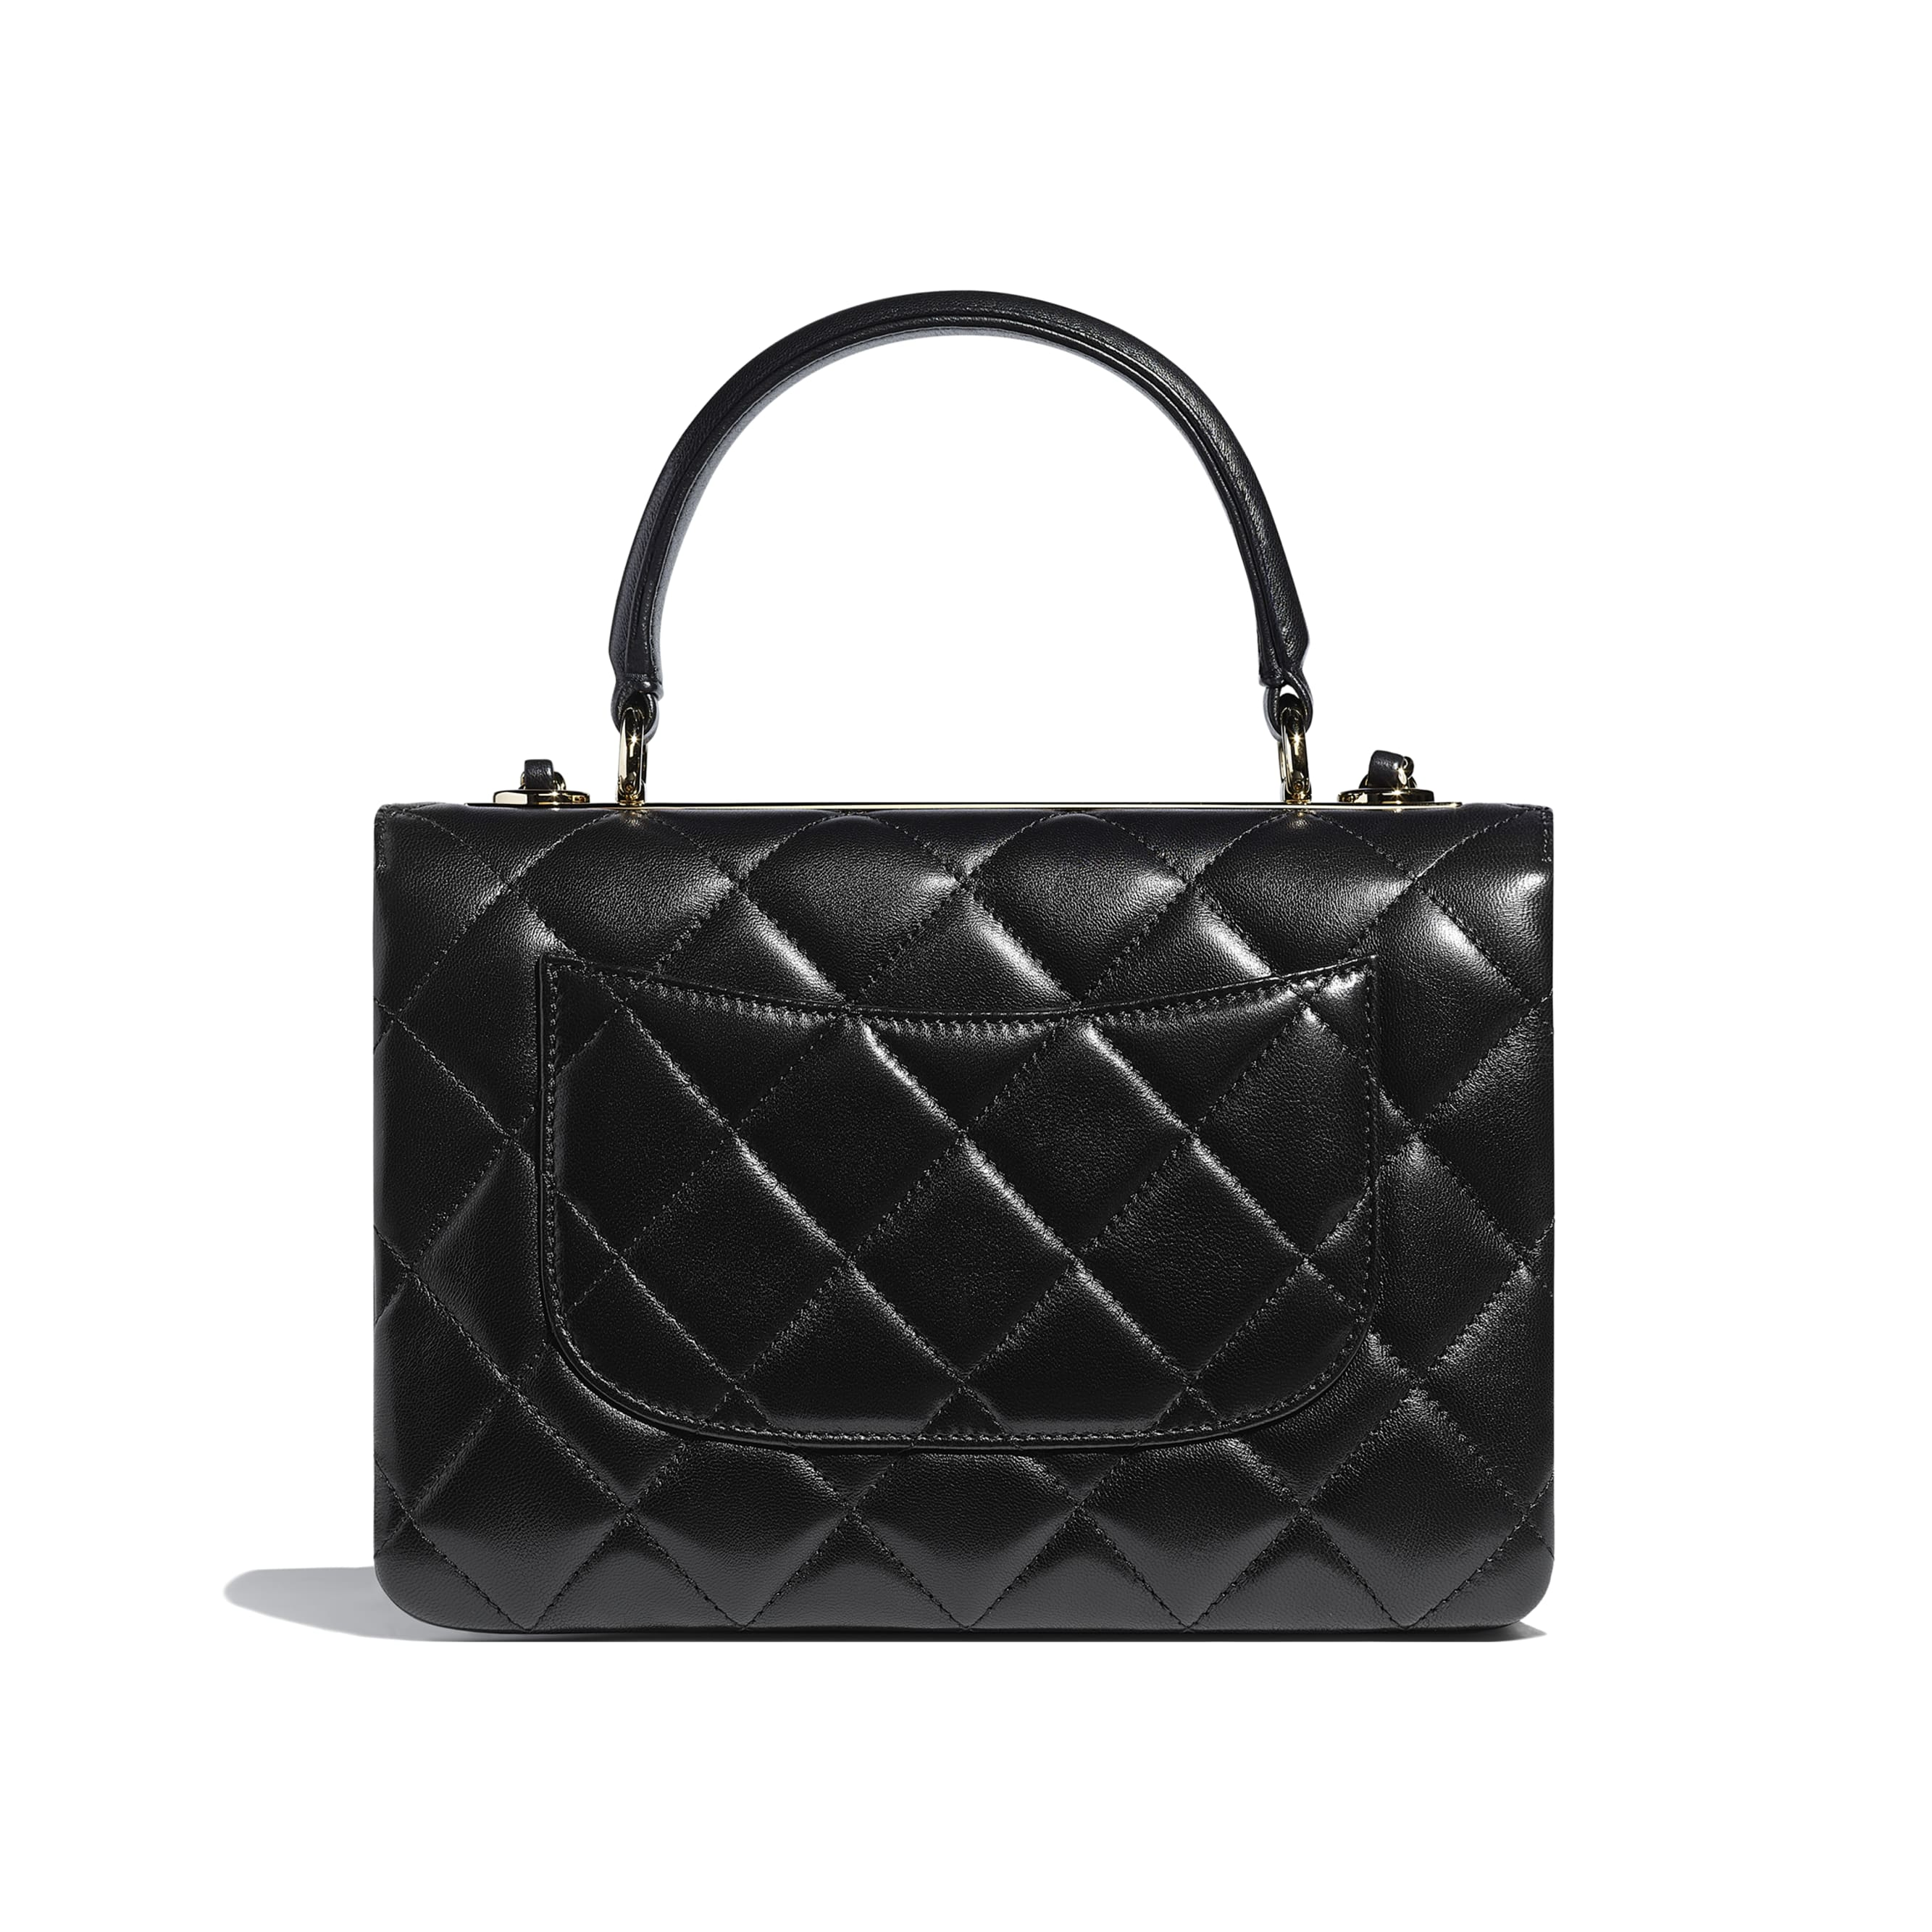 Small Flap Bag With Top Handle - Black - Lambskin - CHANEL - Alternative view - see standard sized version